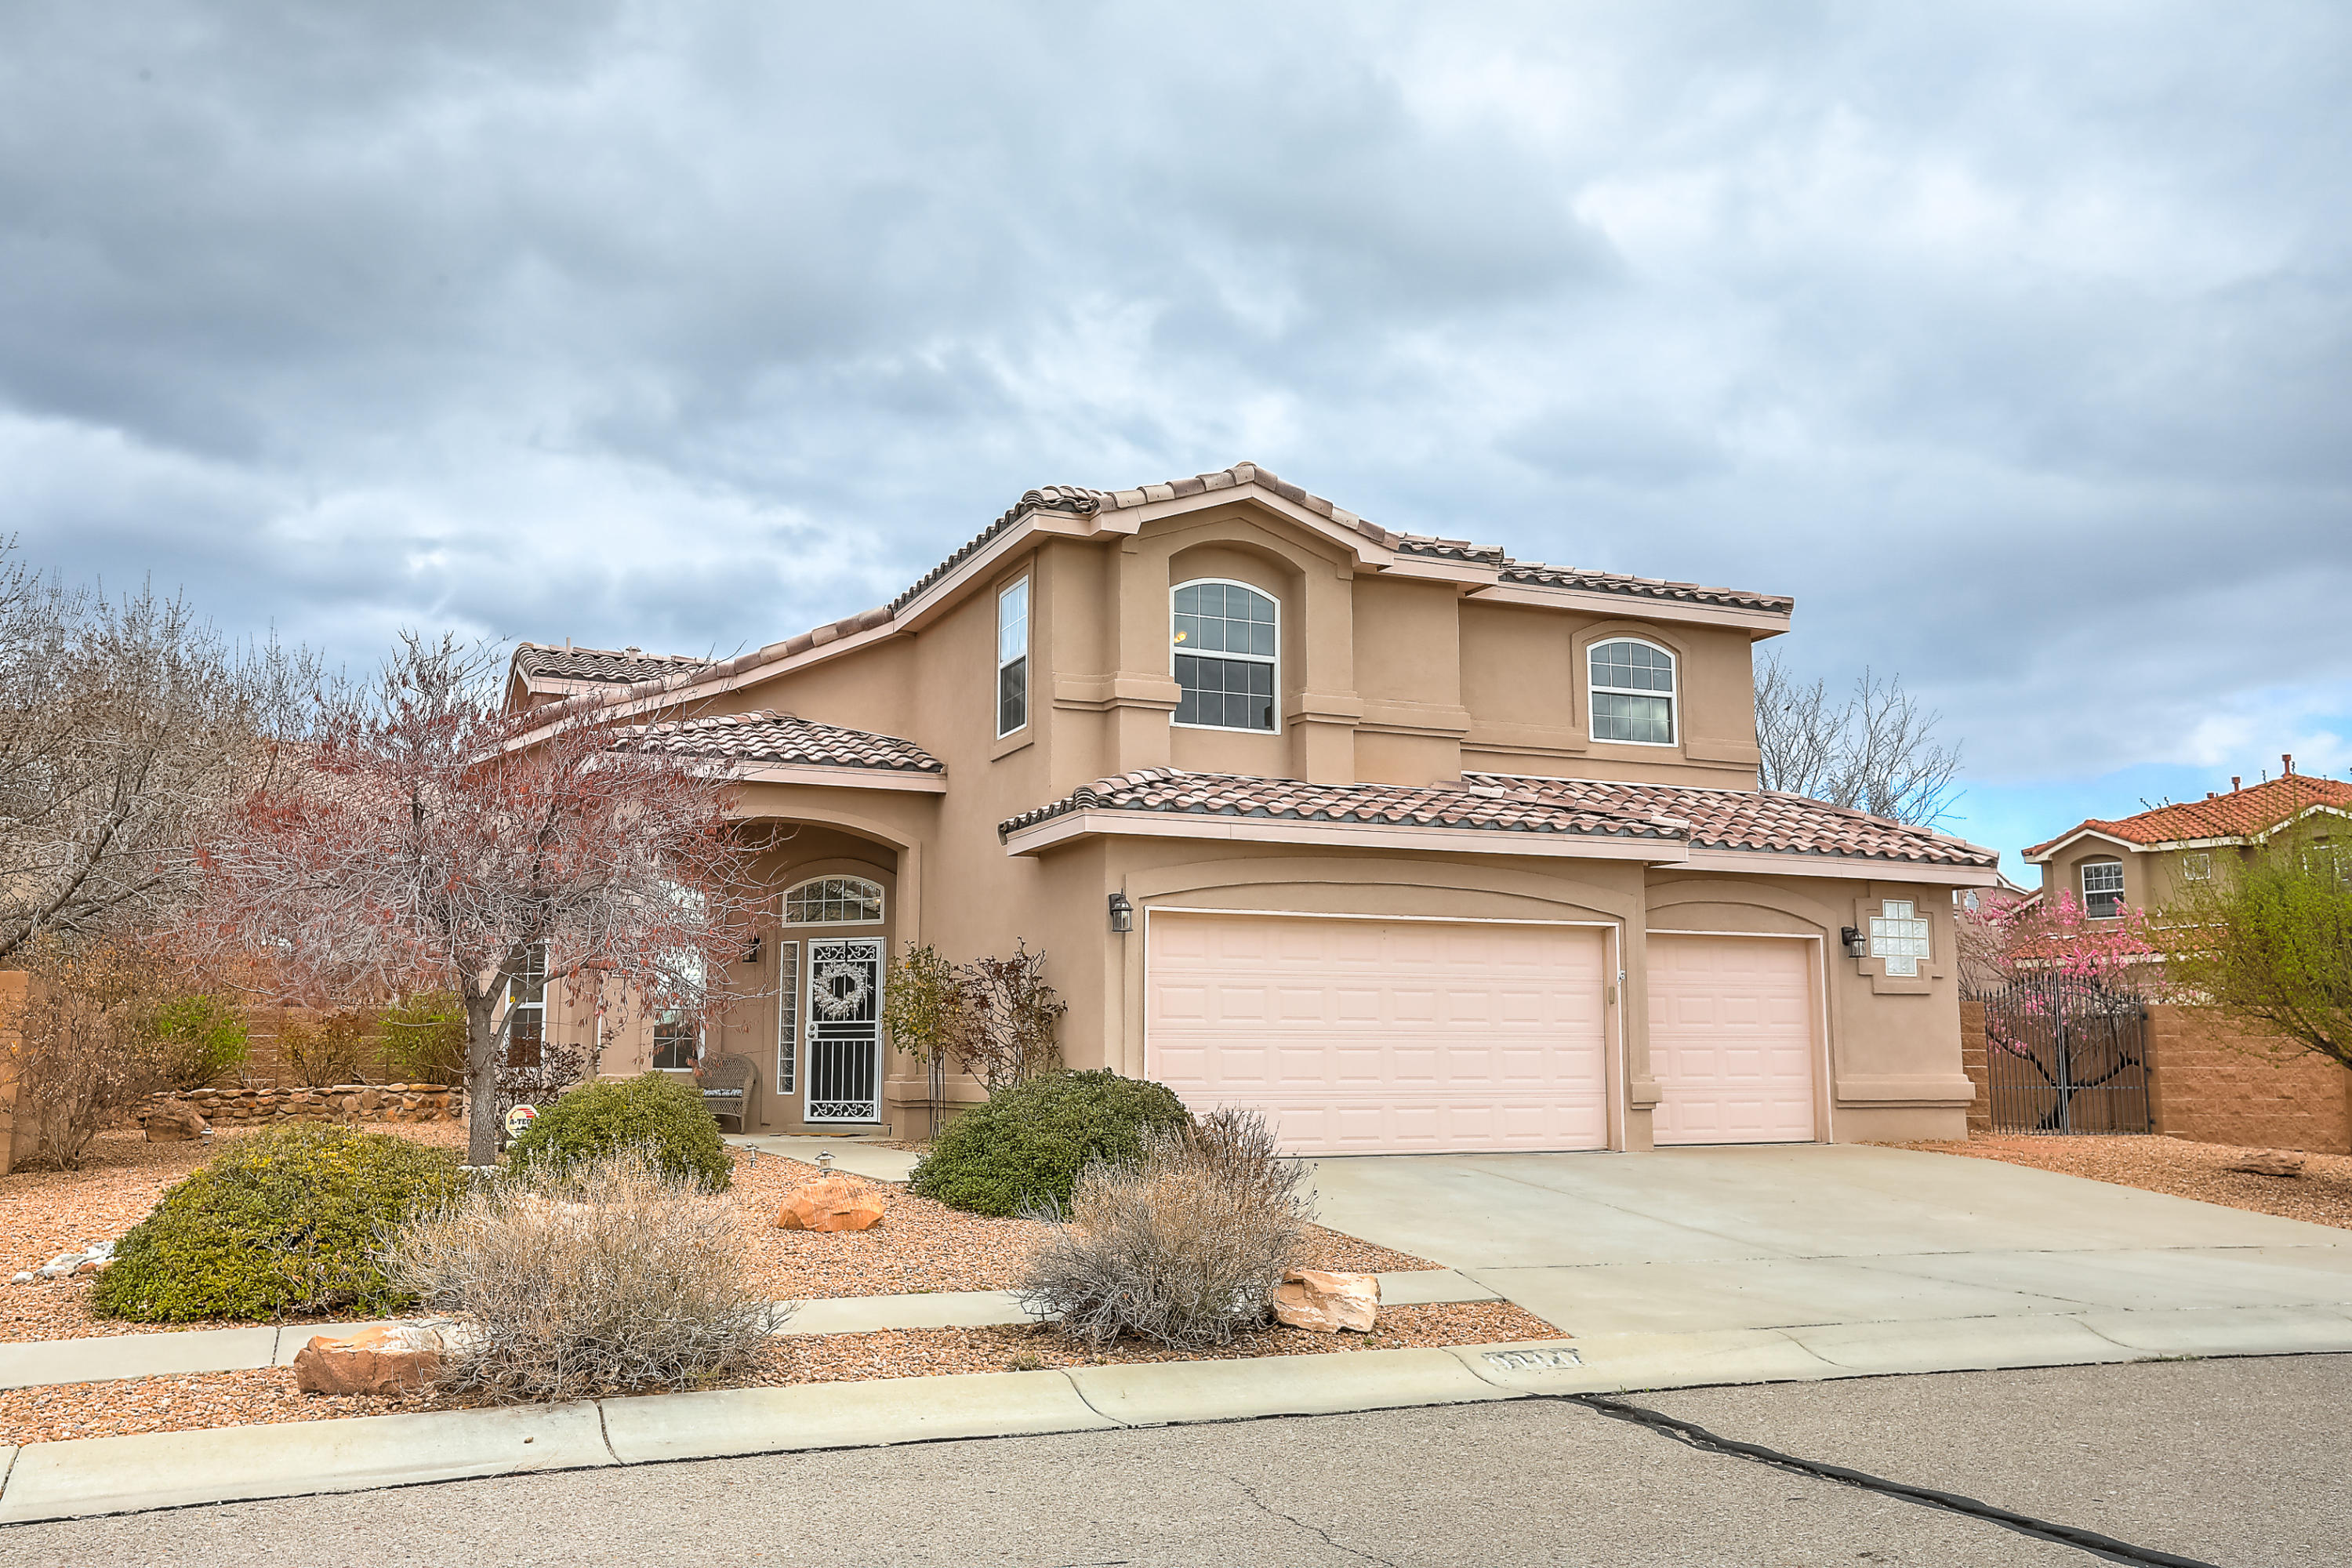 9100 BLUE MESA Drive, Albuquerque NM 87113